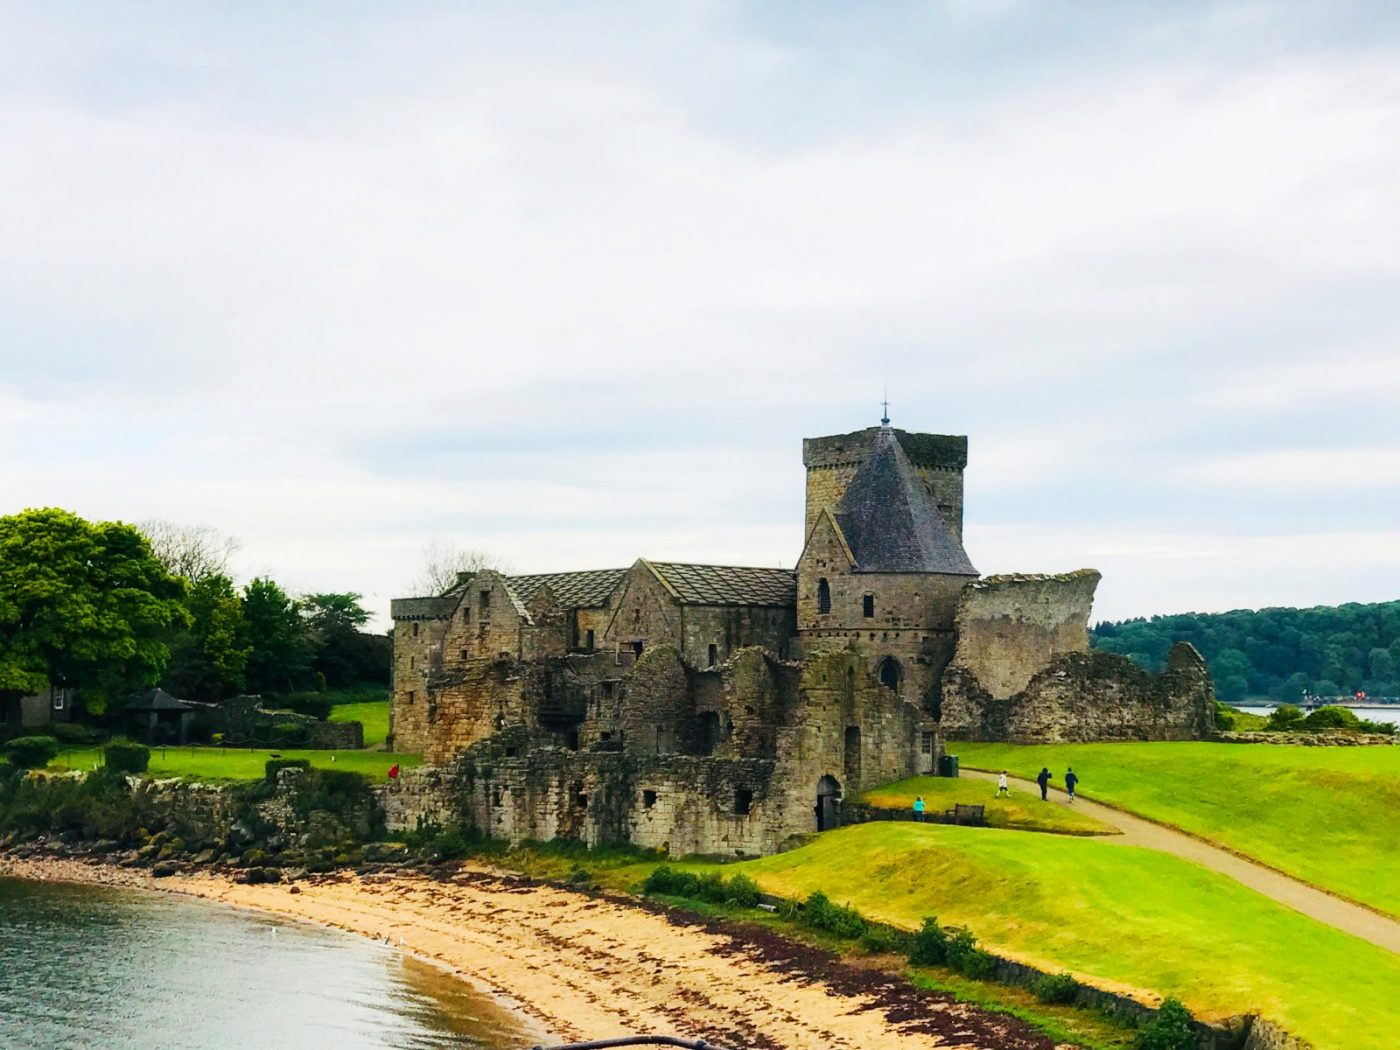 Inchcolm Island and Inchcolm Abbey